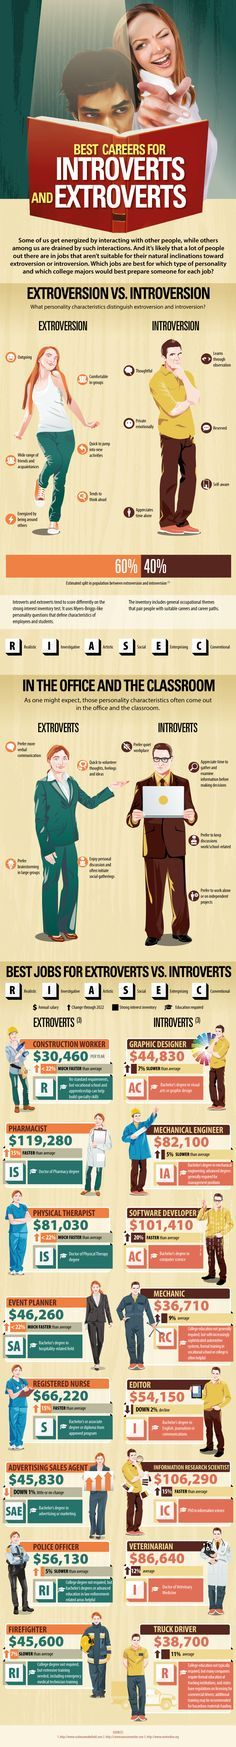 The Career Assessment Site found the best careers for introverts versus for extroverts.